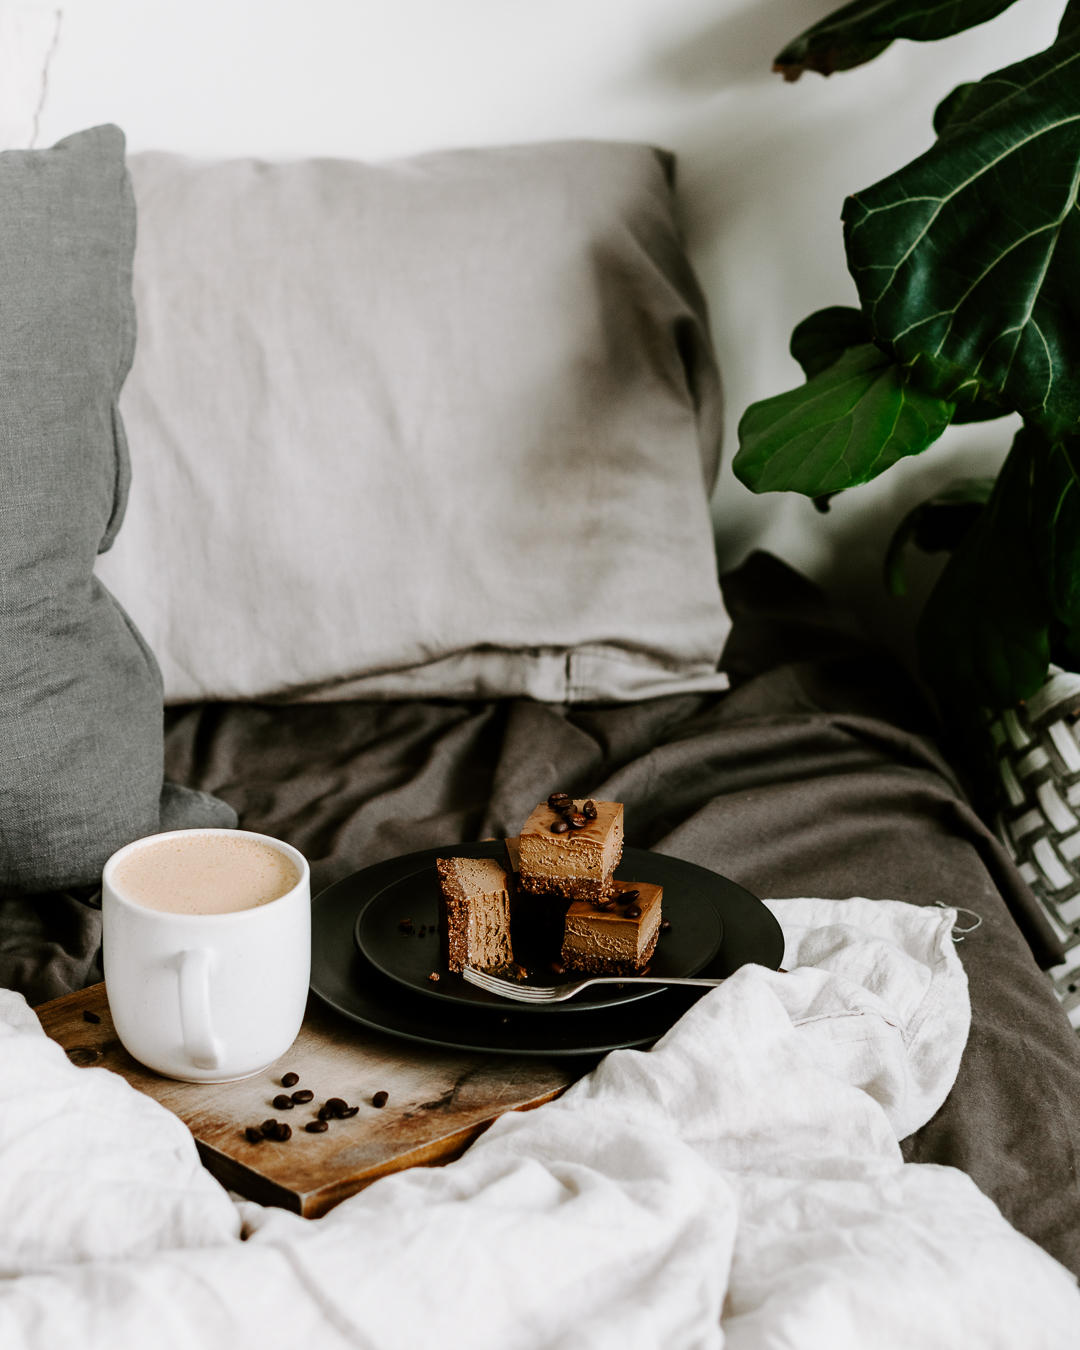 How_To_Create_Your_Non-tox_Bedroom_Sanctuary_by_Jordan_Pie_Nutritionist_Photographer-1.jpg